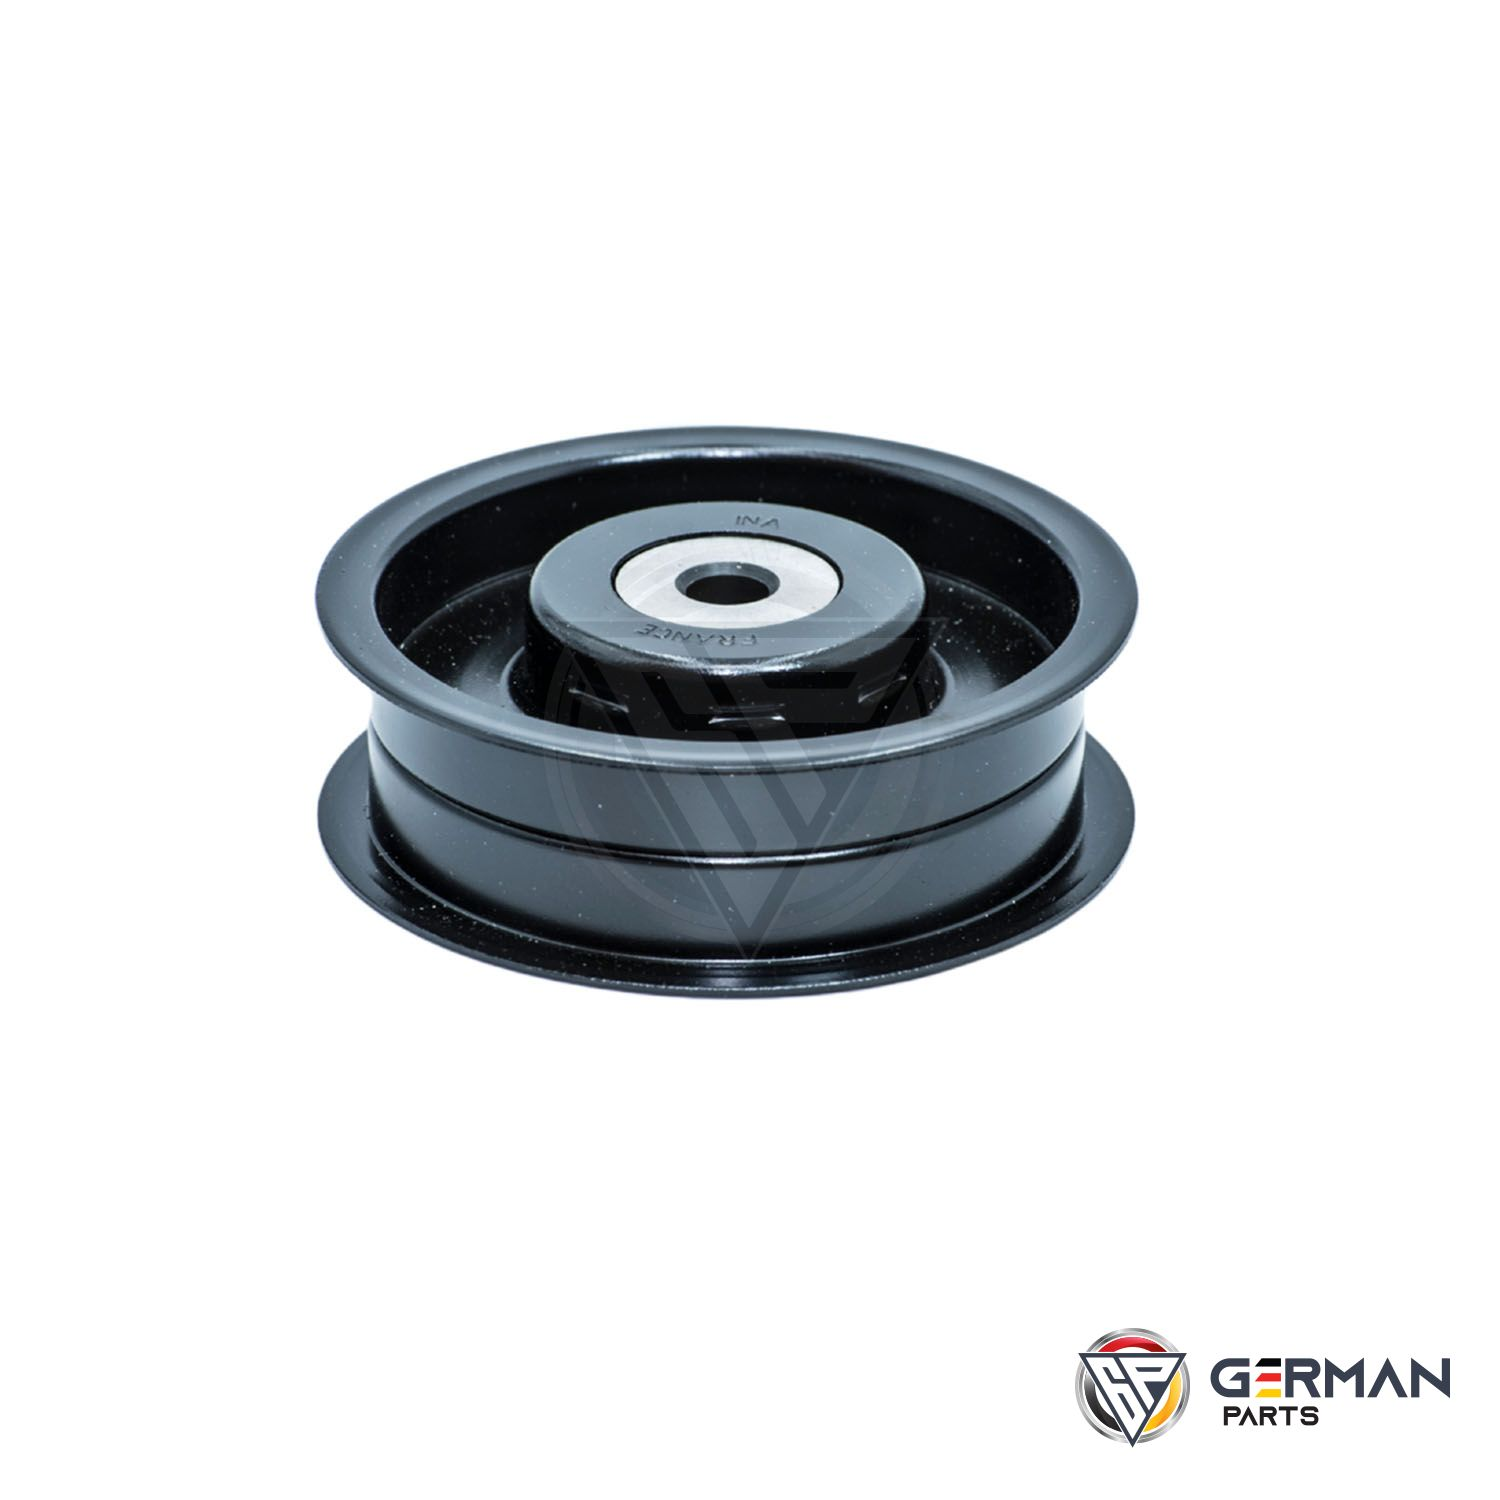 Buy INA Tensioner Pulley 2722021419 - German Parts